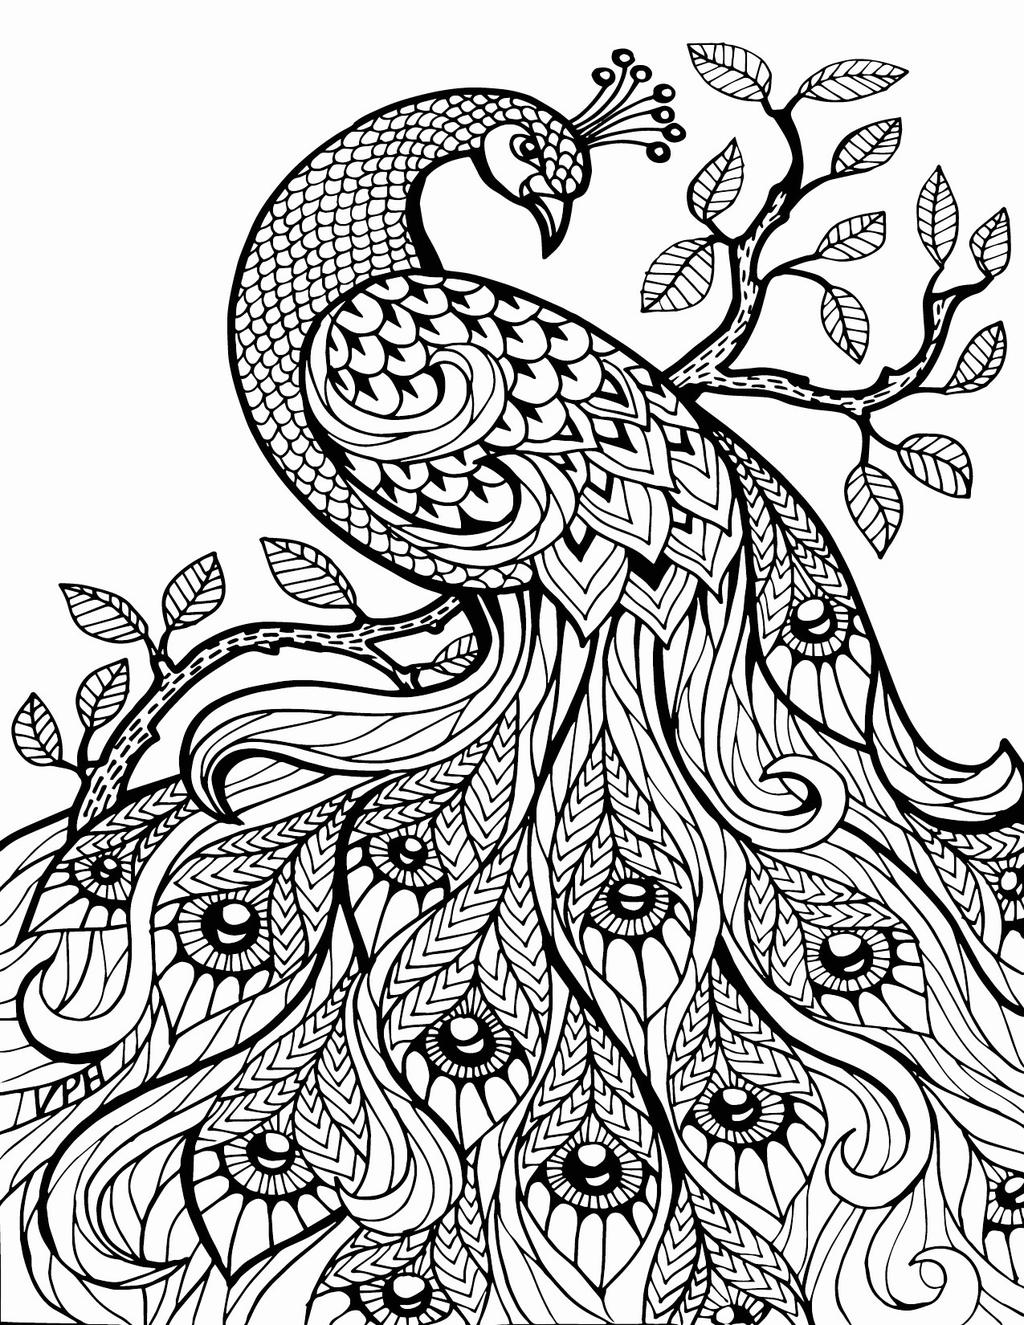 coloring sheets aesthetic peacock aesthetic coloring pages free printable coloring aesthetic coloring sheets